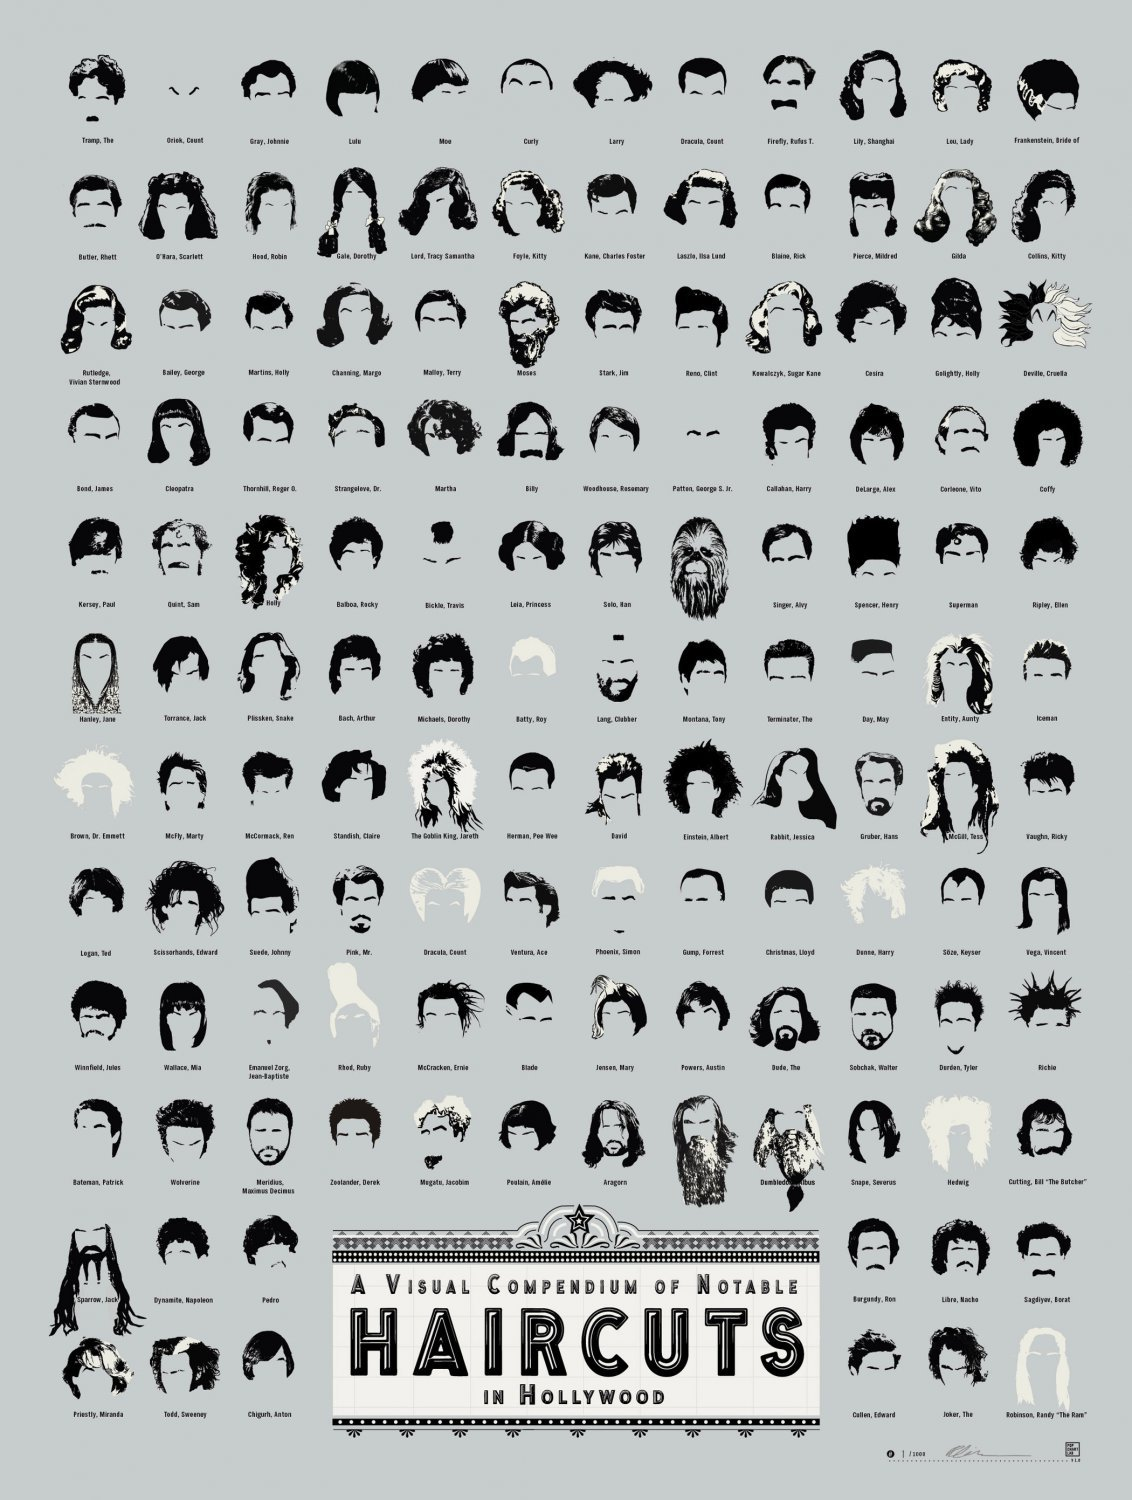 A Visual Compendium of Notable Haircuts in Hollywood Chart  13x19 inches Poster Print